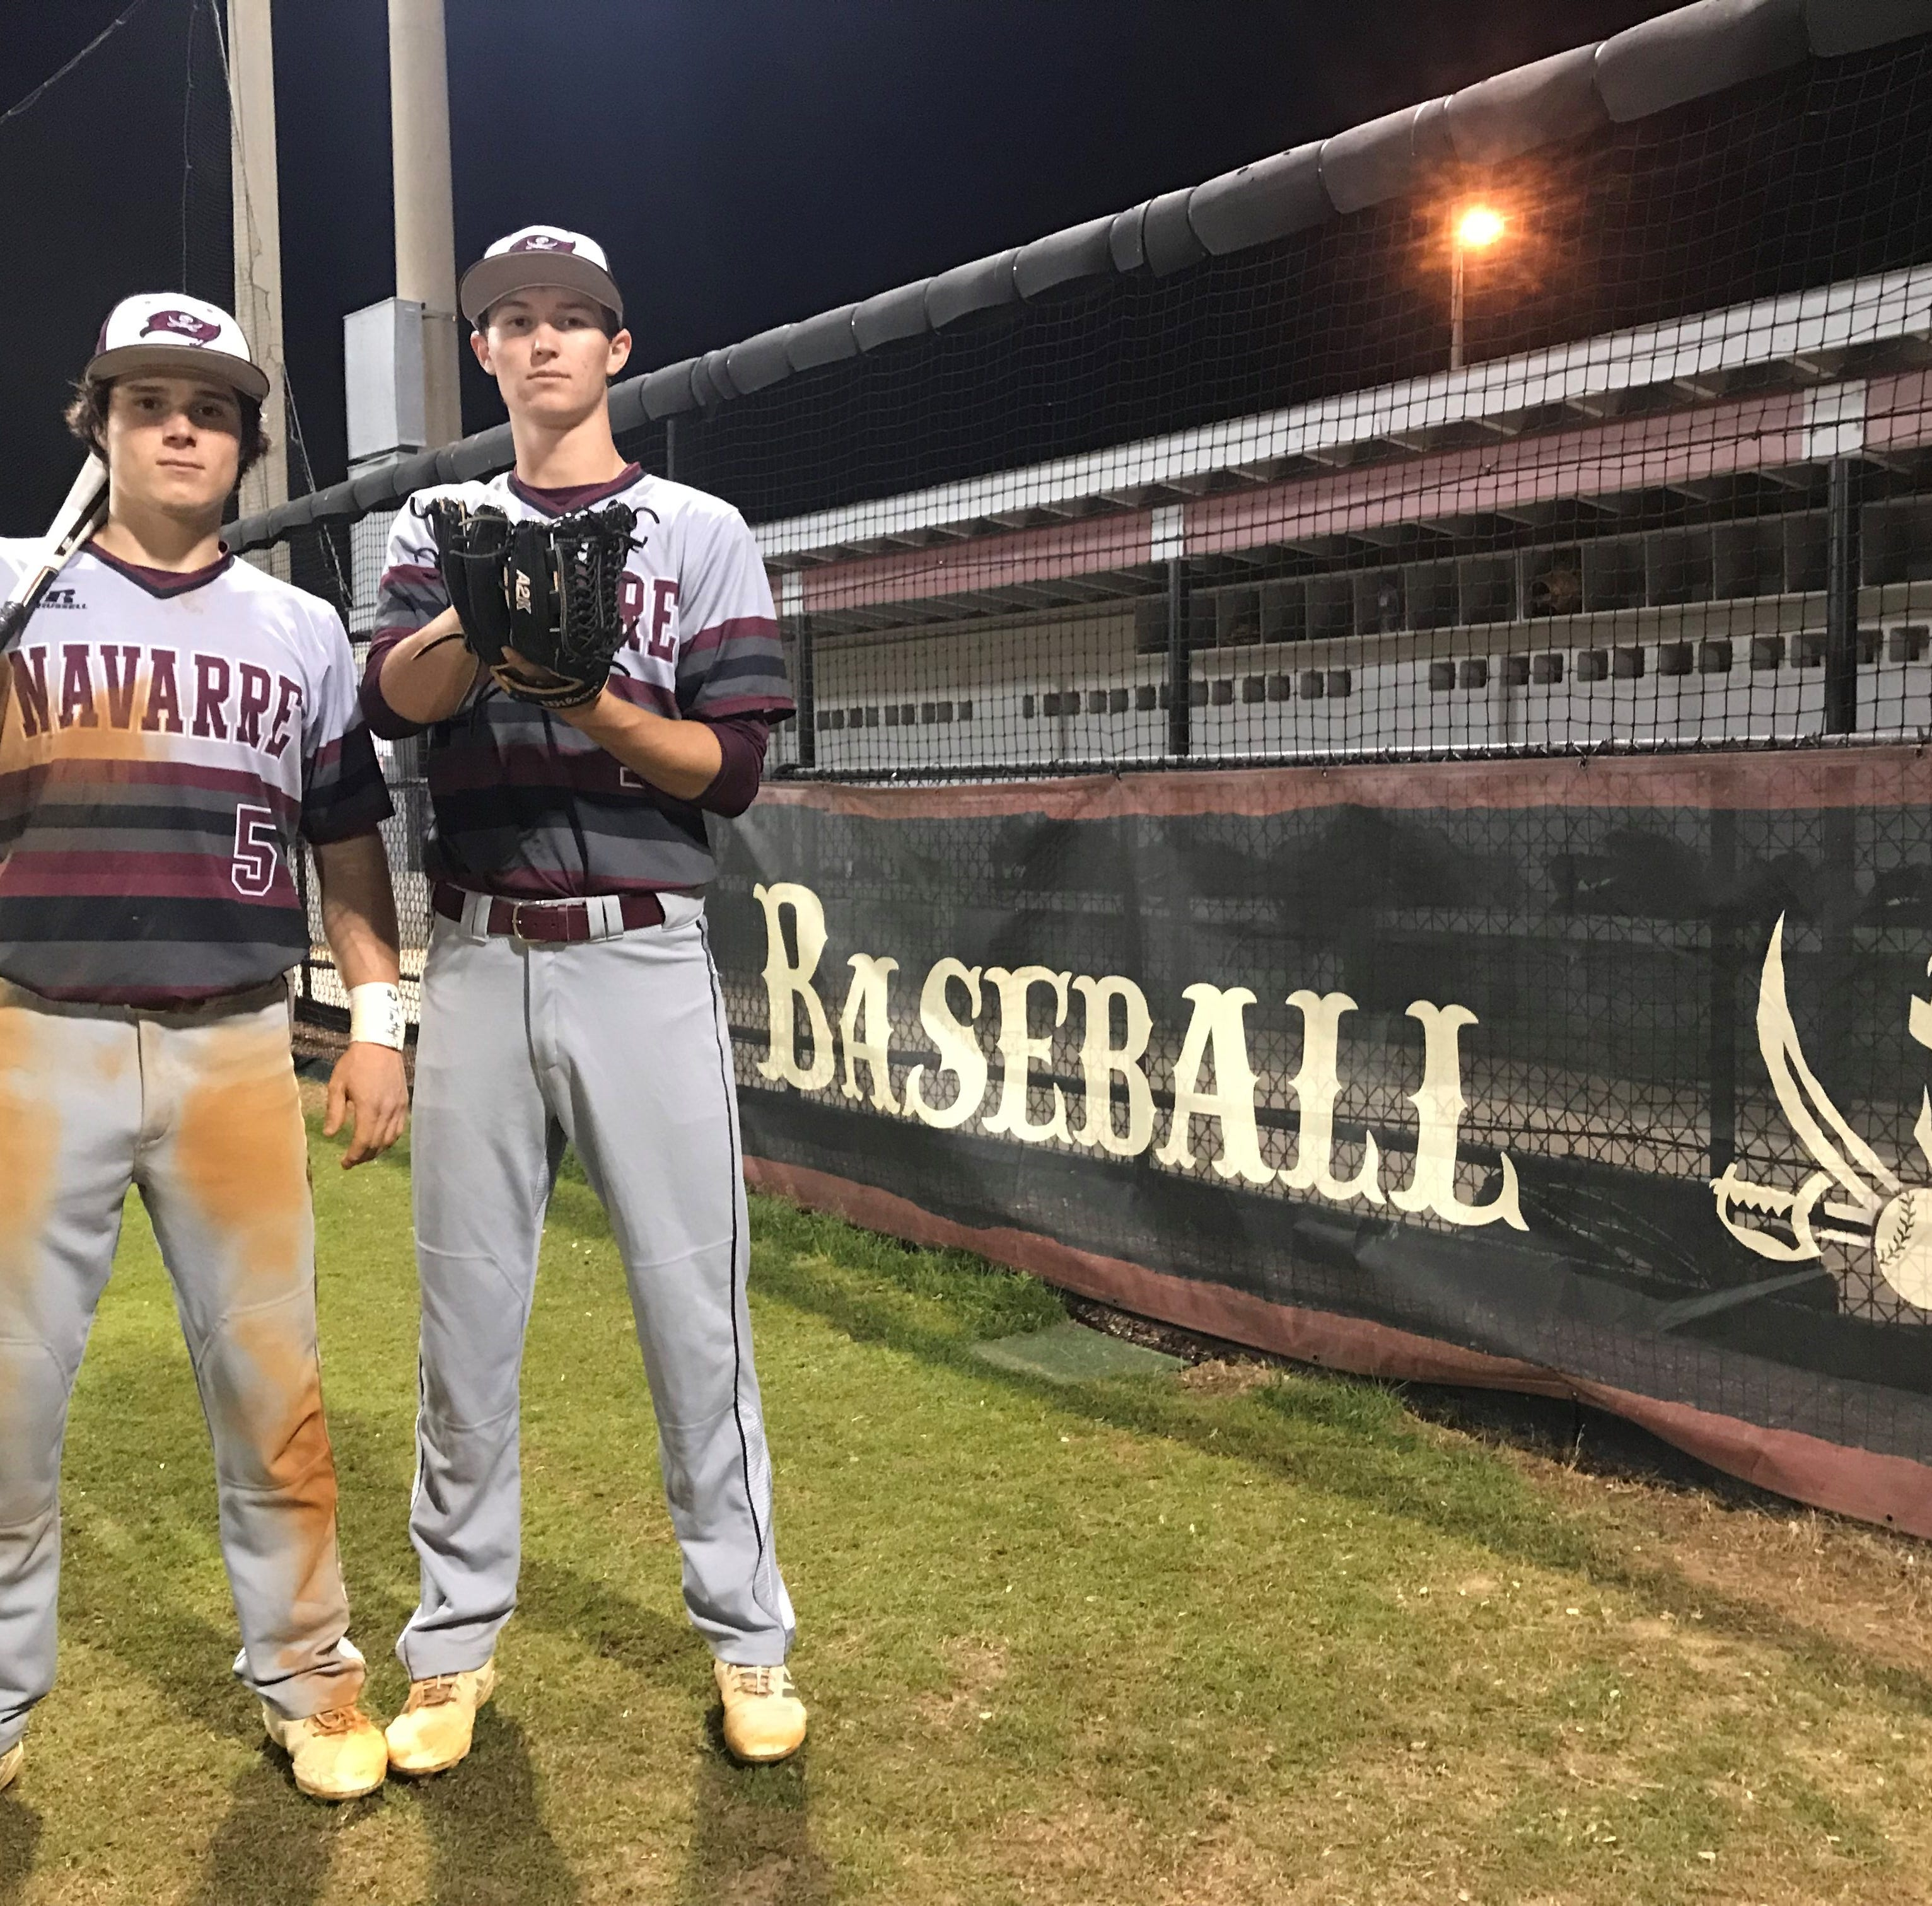 Navarre seniors Ackman, Terrian aim for steady improvement for baseball team